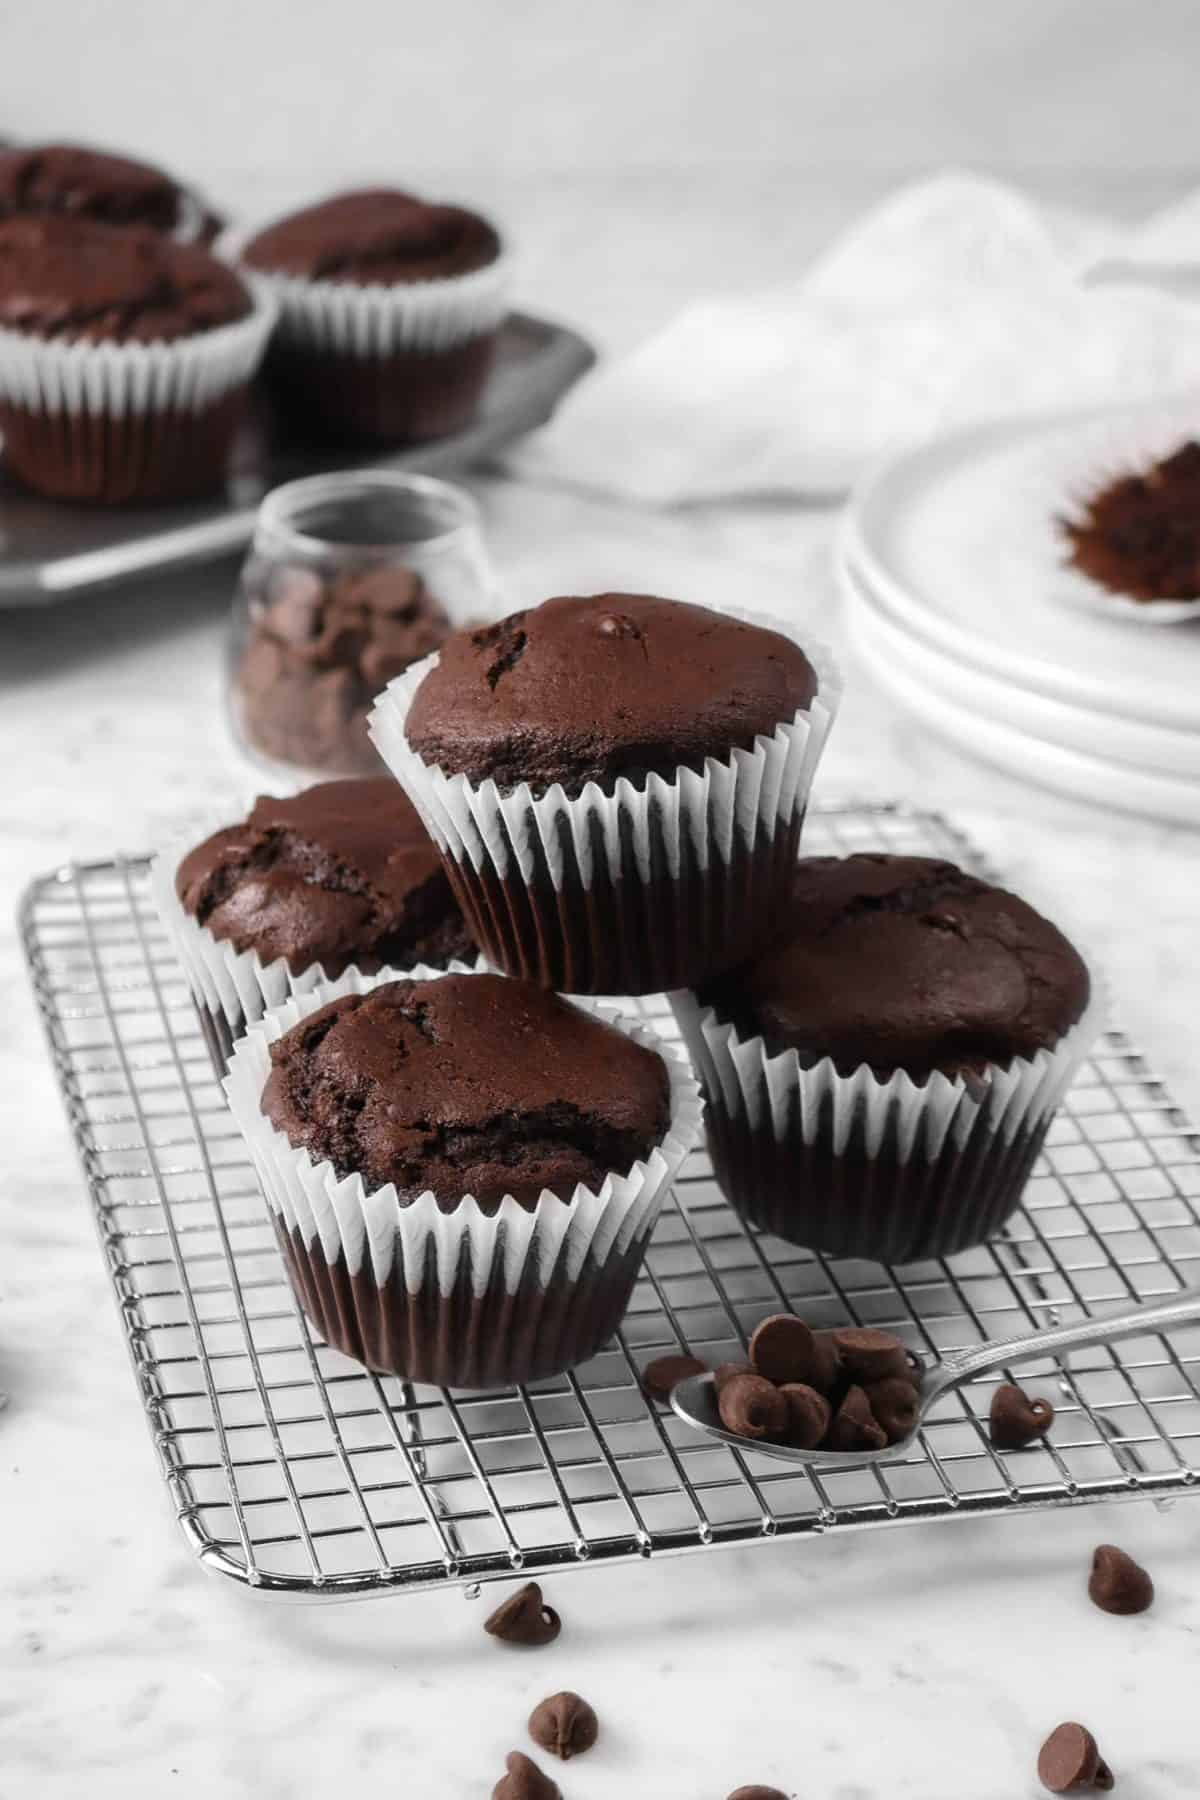 chocolate muffins on a cooling rack with chocolate chips, white plates, a napkin, and a pan of muffins